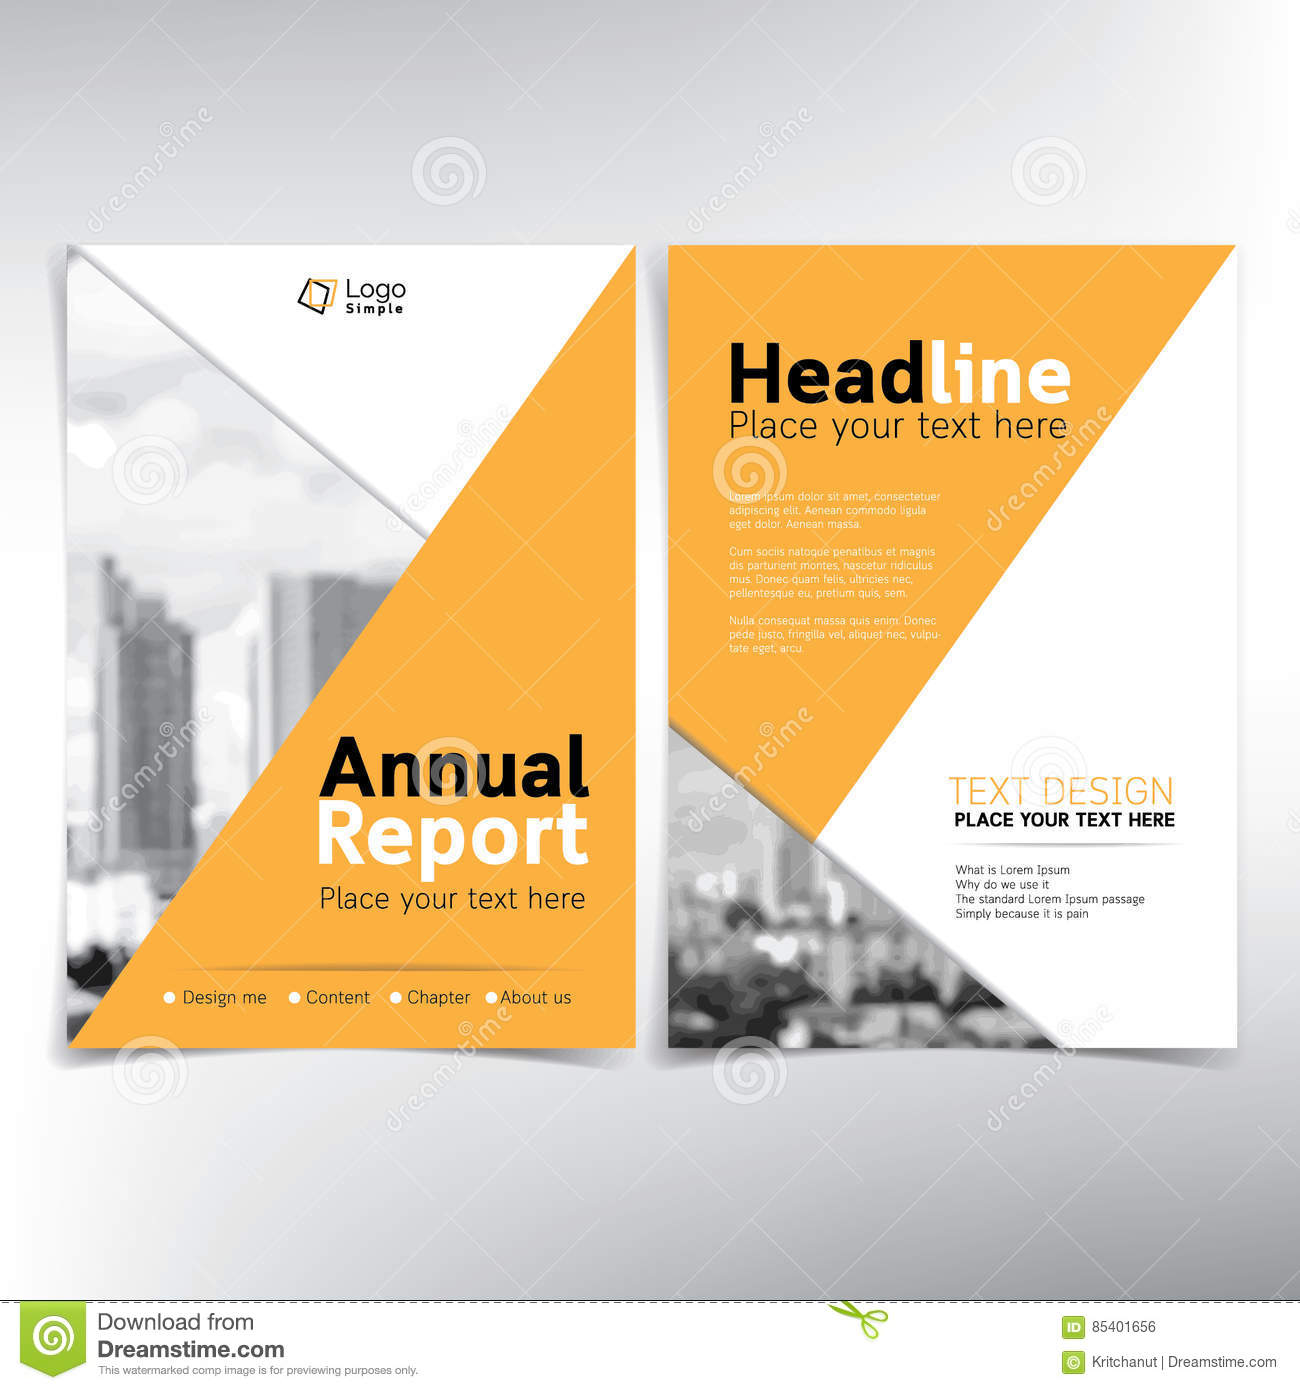 Modern business cover page vector template condominium and real royalty free vector download modern business cover page vector template condominium and real estate concept flashek Gallery